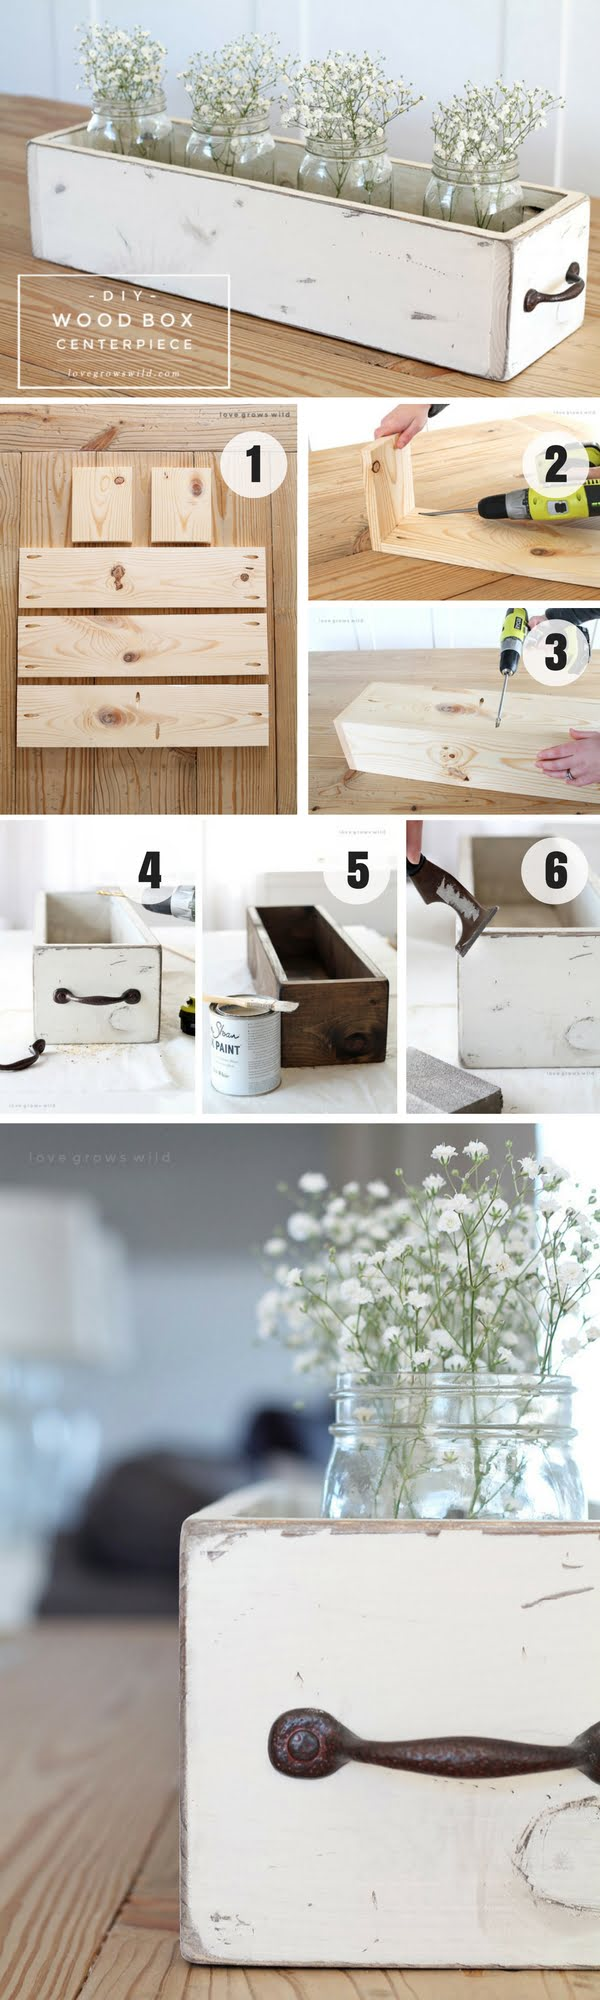 Check out how to build an easy DIY Wood Box Centerpiece